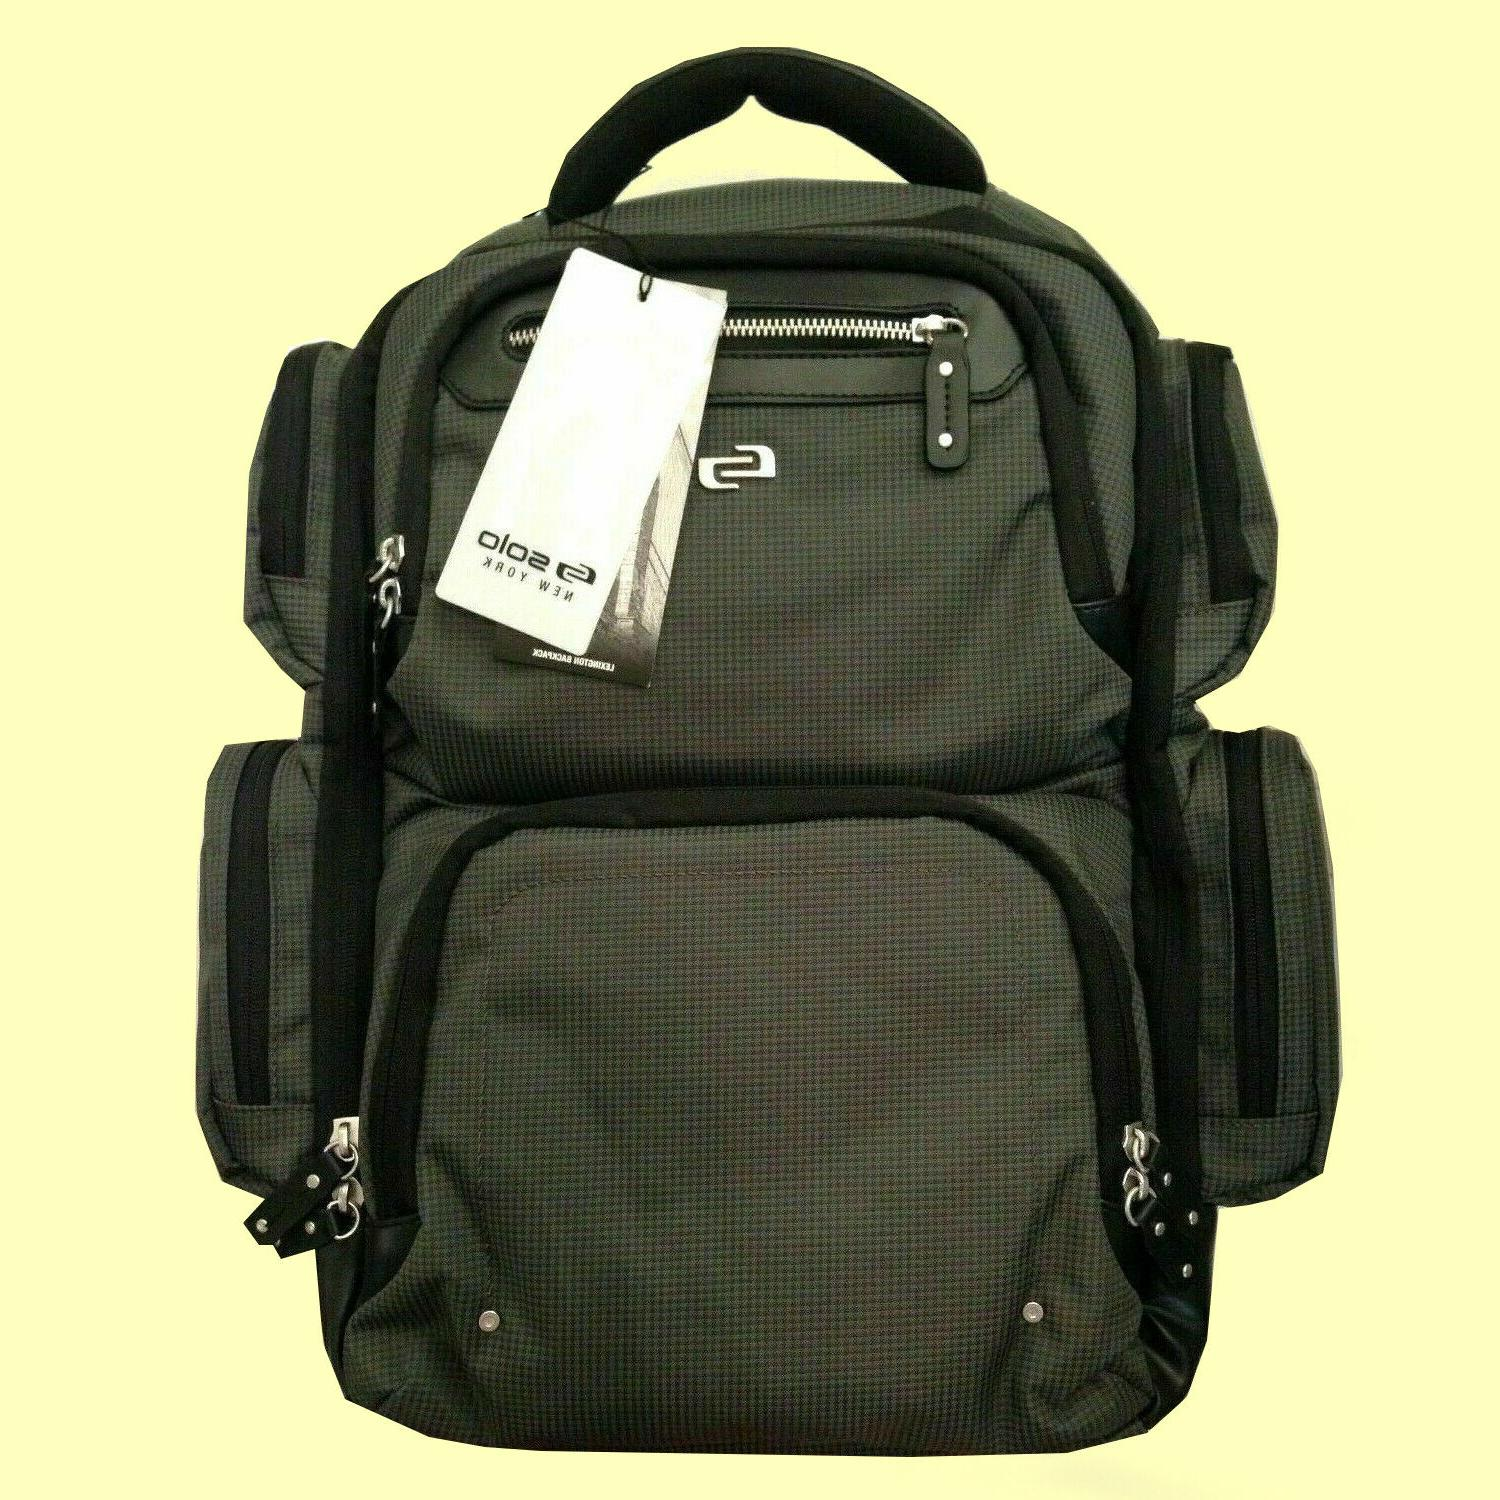 official gramercy collection laptop backpack gray